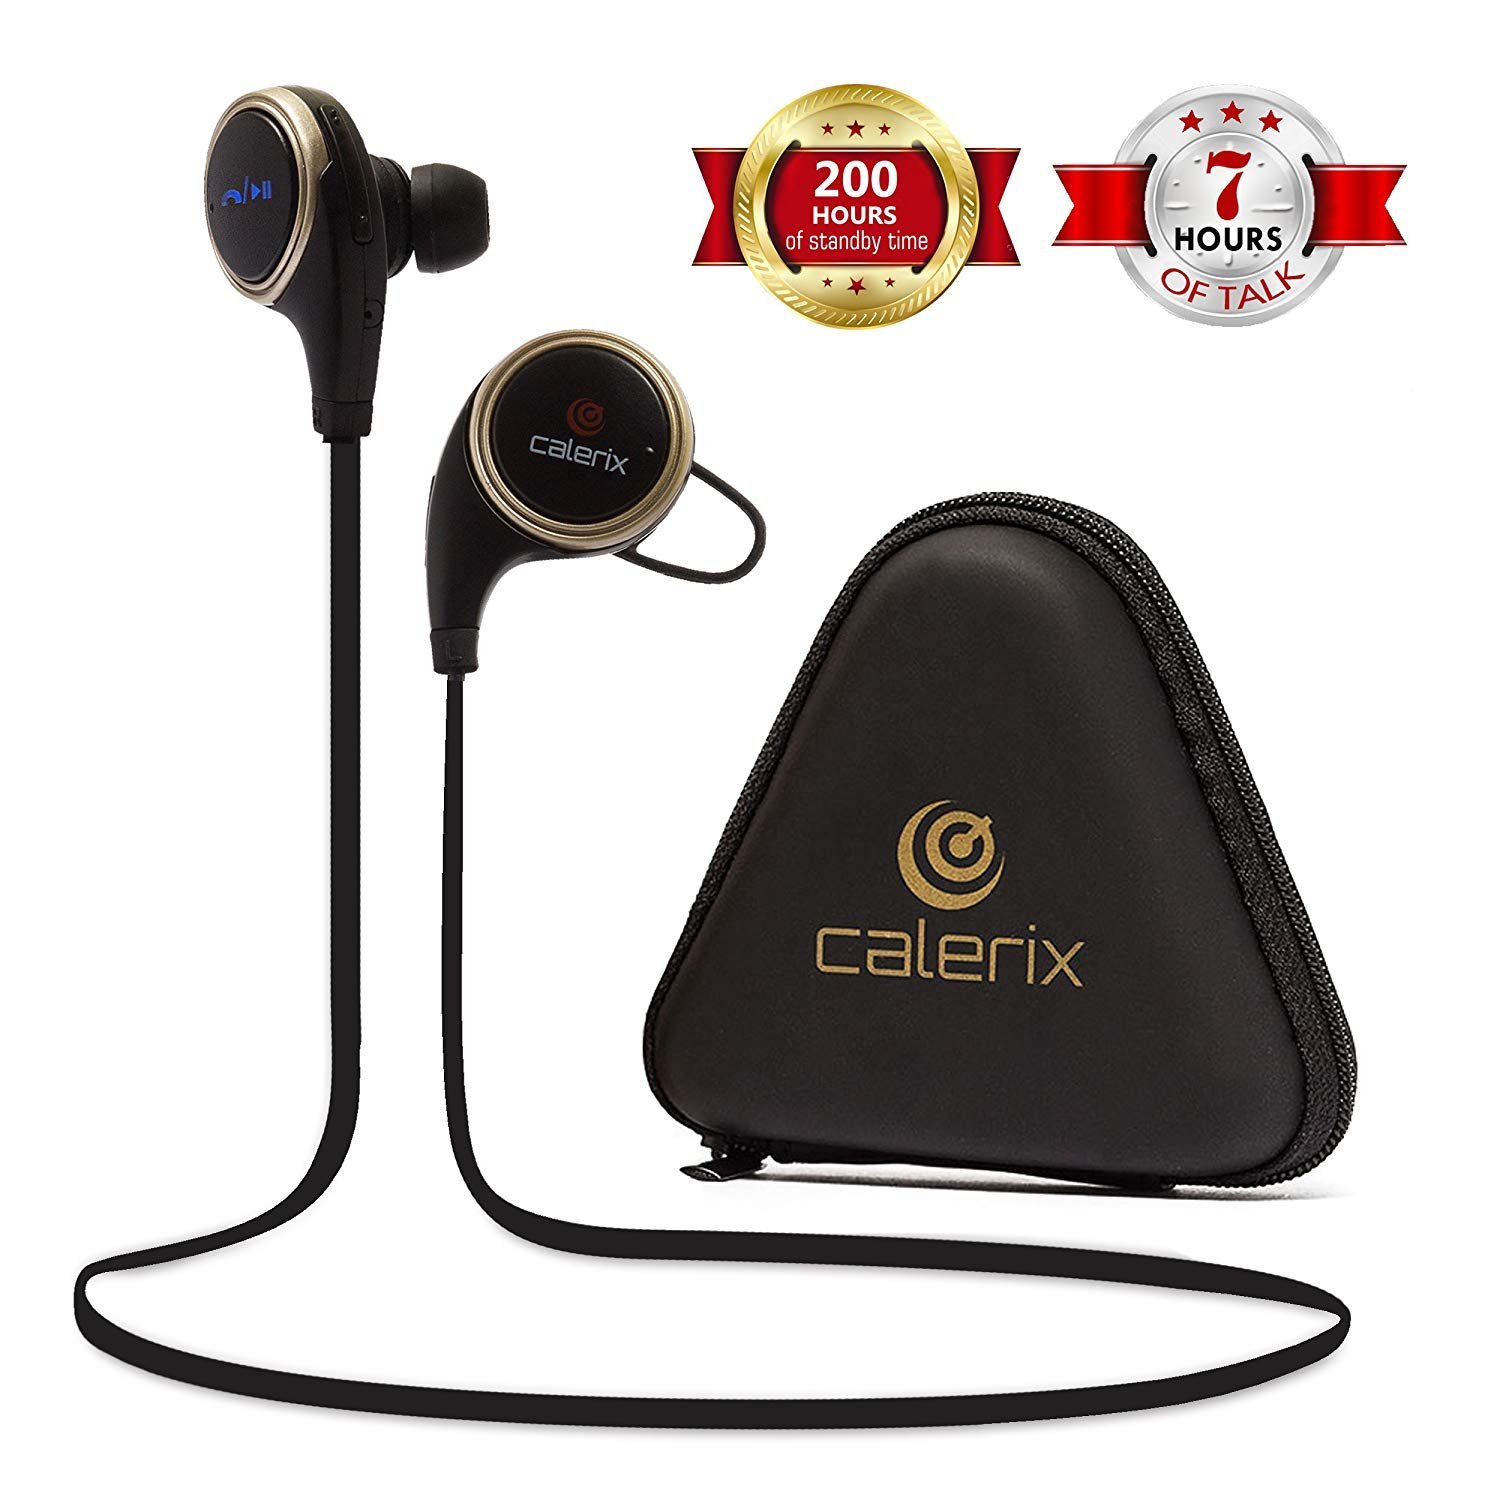 Bluetooth Headphones 4.1 Wireless Calerix, with Sweat Proof, Noise Cancelling Technology – Lightweight Sport In-Ear Earbuds with Built-In Microphone – Connect to iOS, Android (Black/Golden)